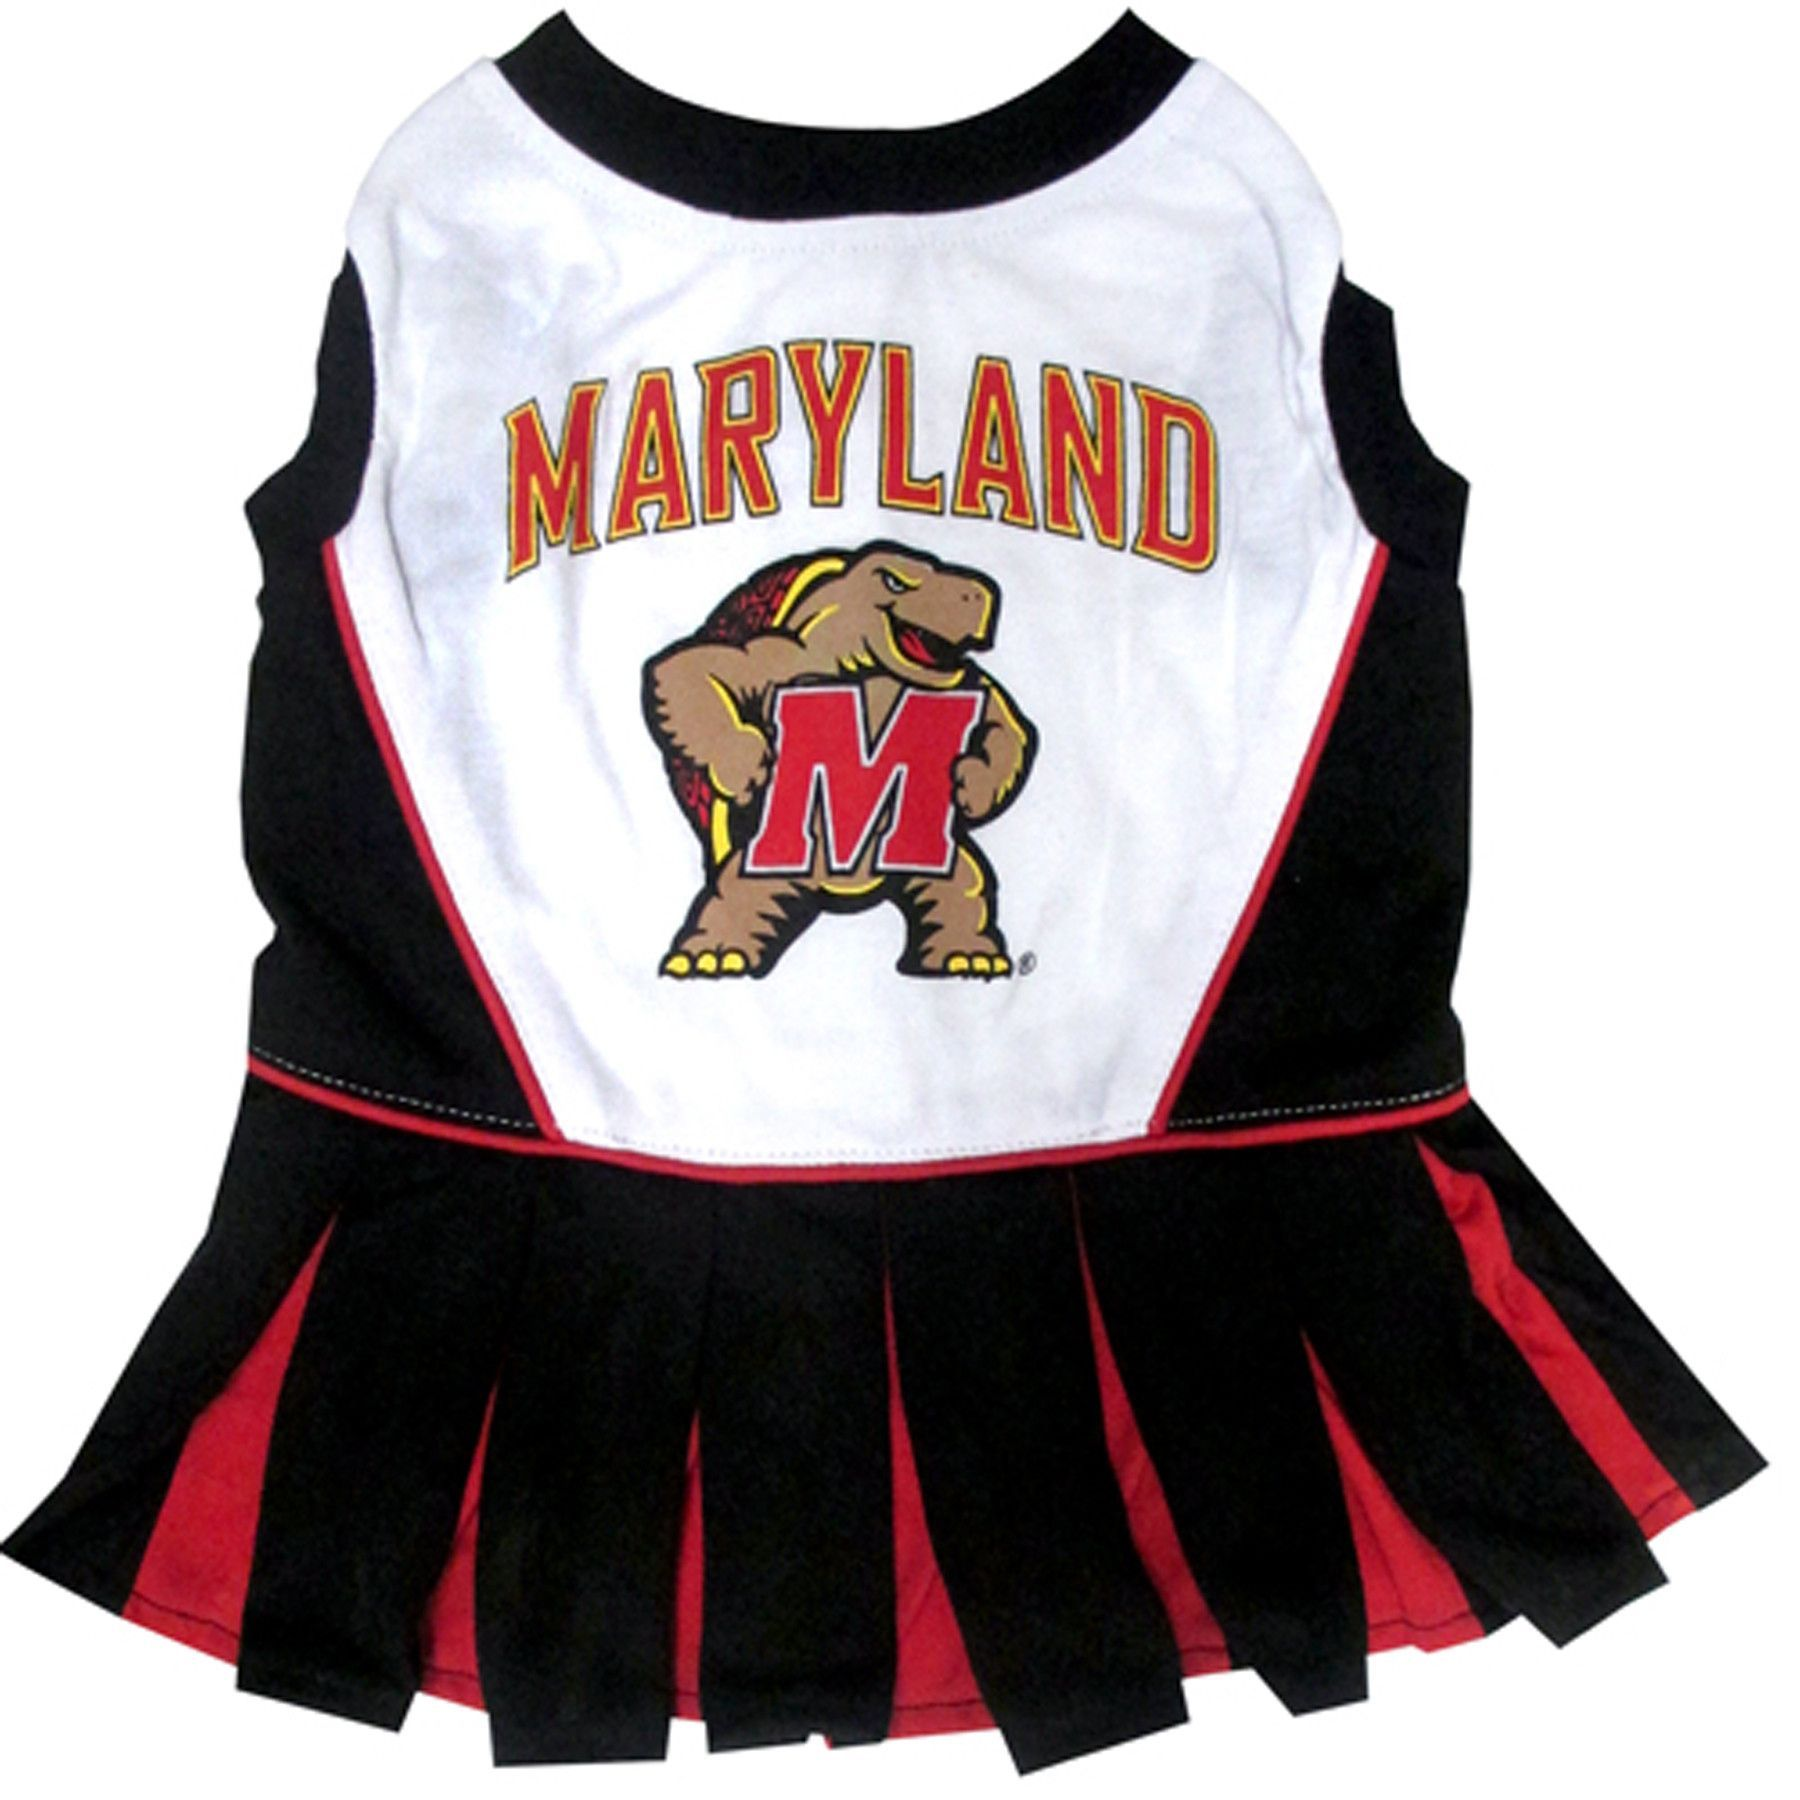 a6627cd29 Maryland Terrapins Cheerleading Outfit